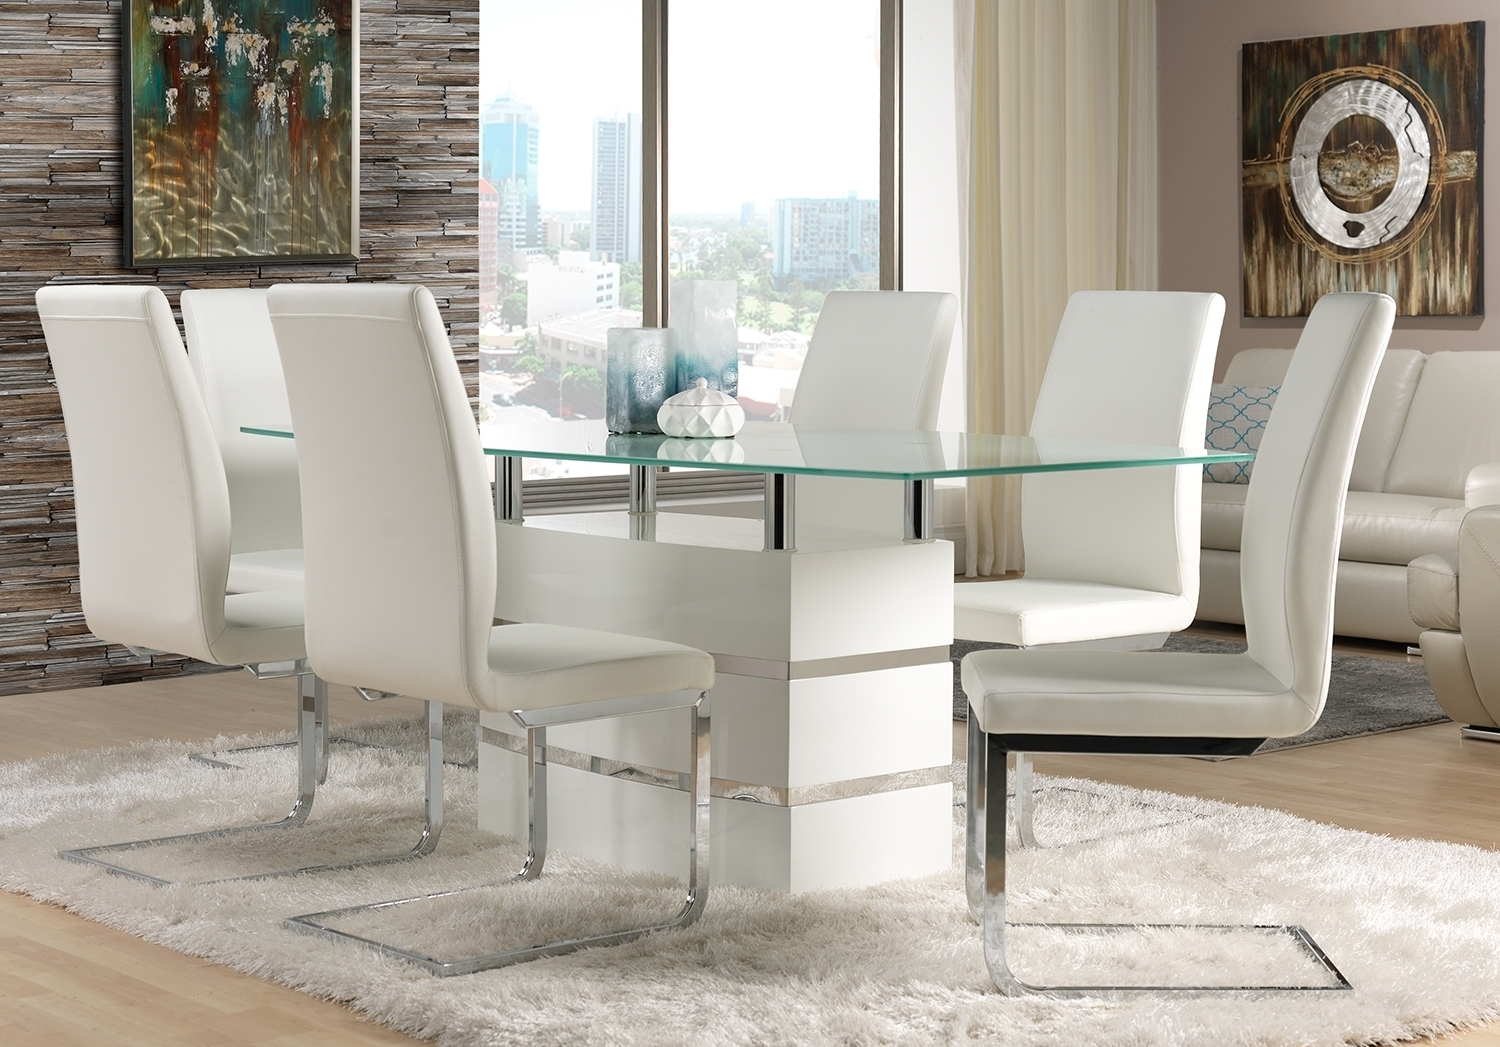 Leon Dining Tables With Favorite Chair Fabulous Glass Dining Table And White Leather Dining Chair (View 12 of 25)